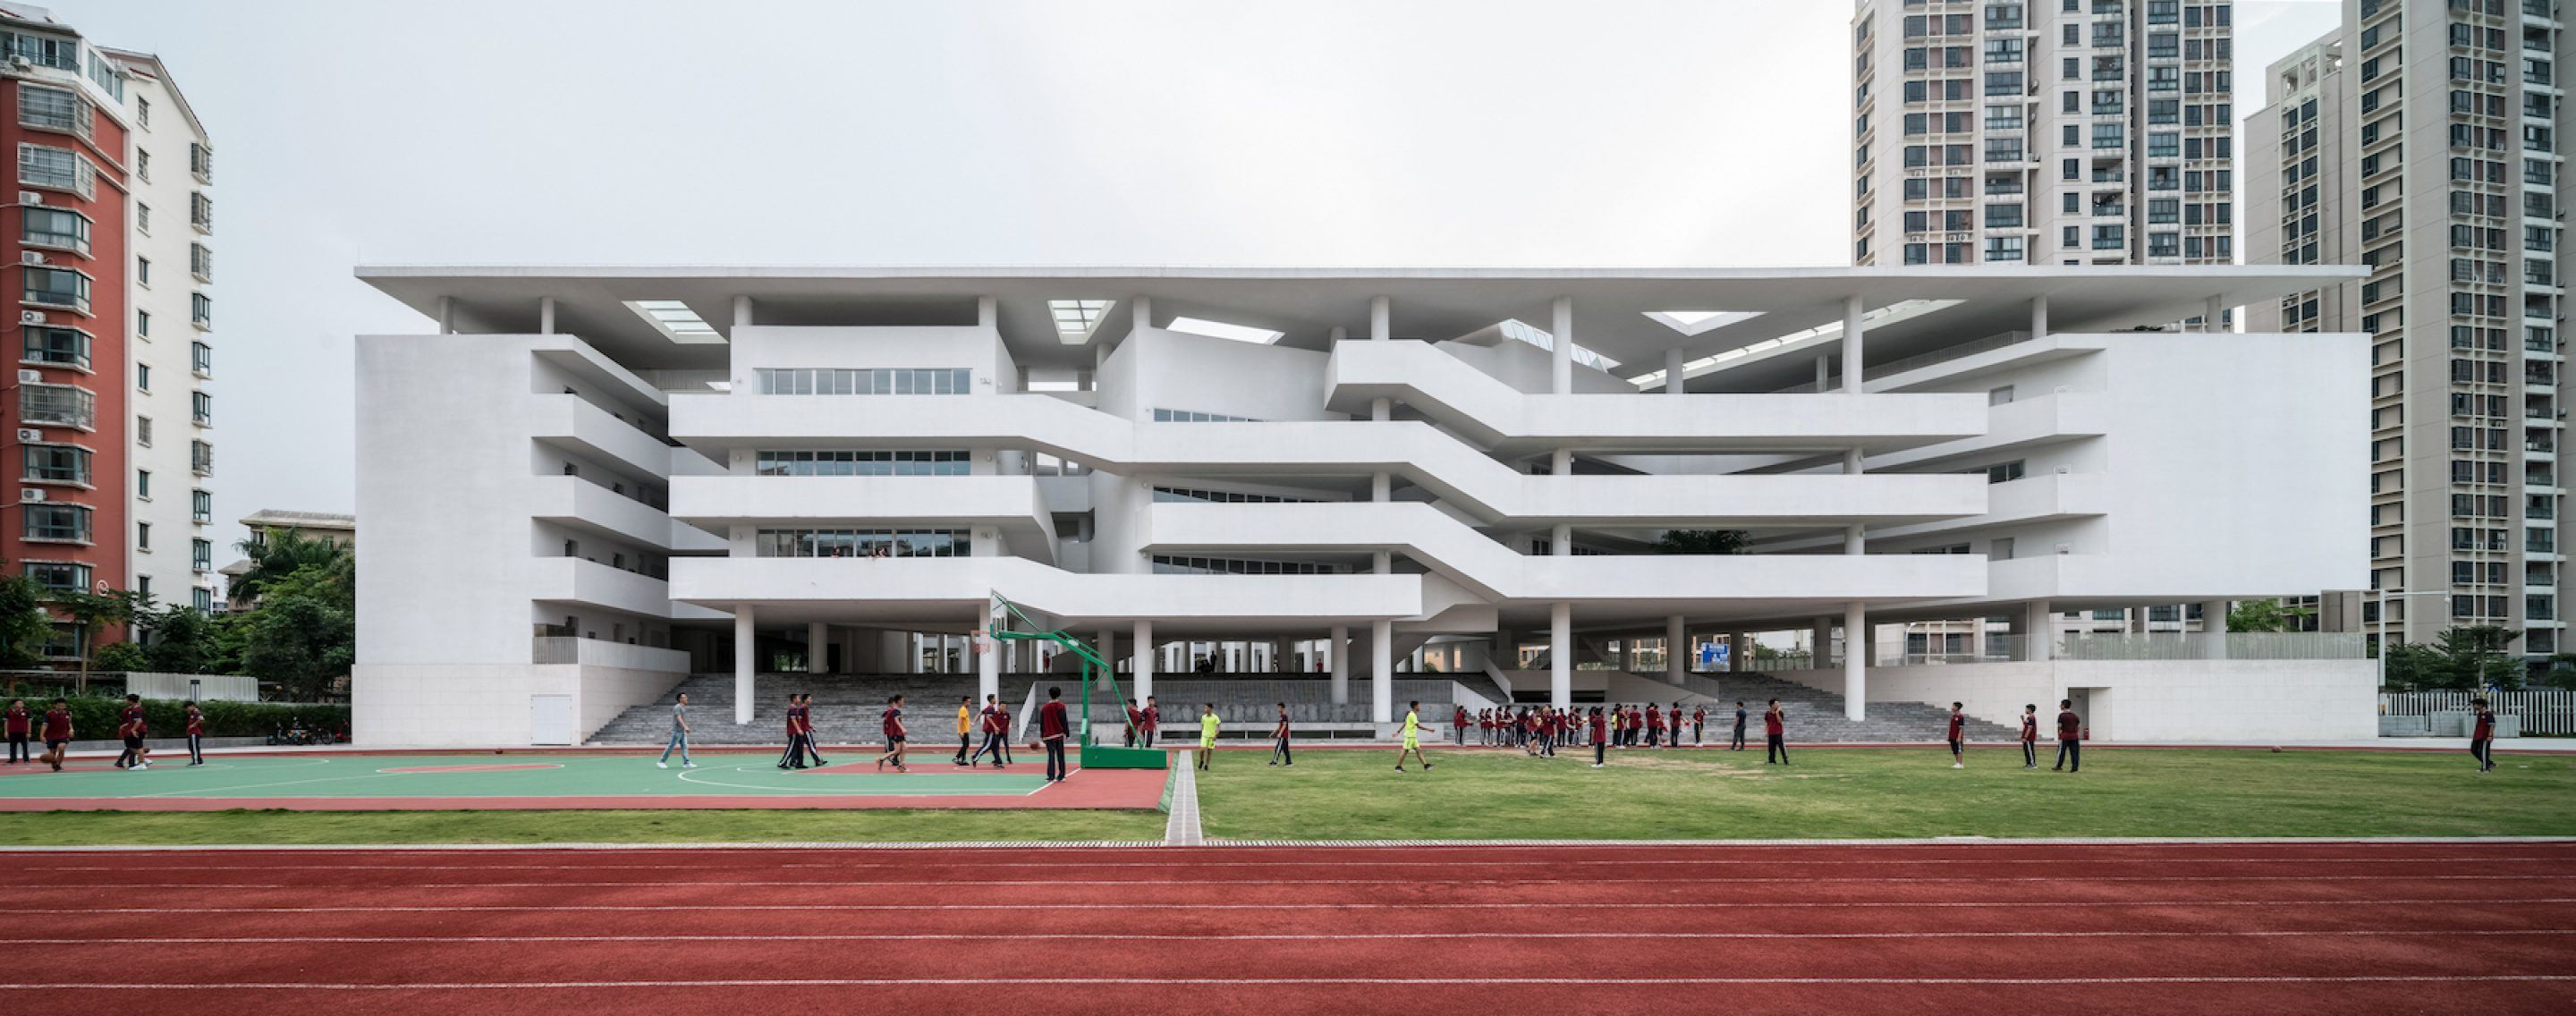 IGNANT-ARCHITECTURE-TRACE-ARCHITECTURE-OFFICE-HUANDAO-MIDDLE-SCHOOL-4